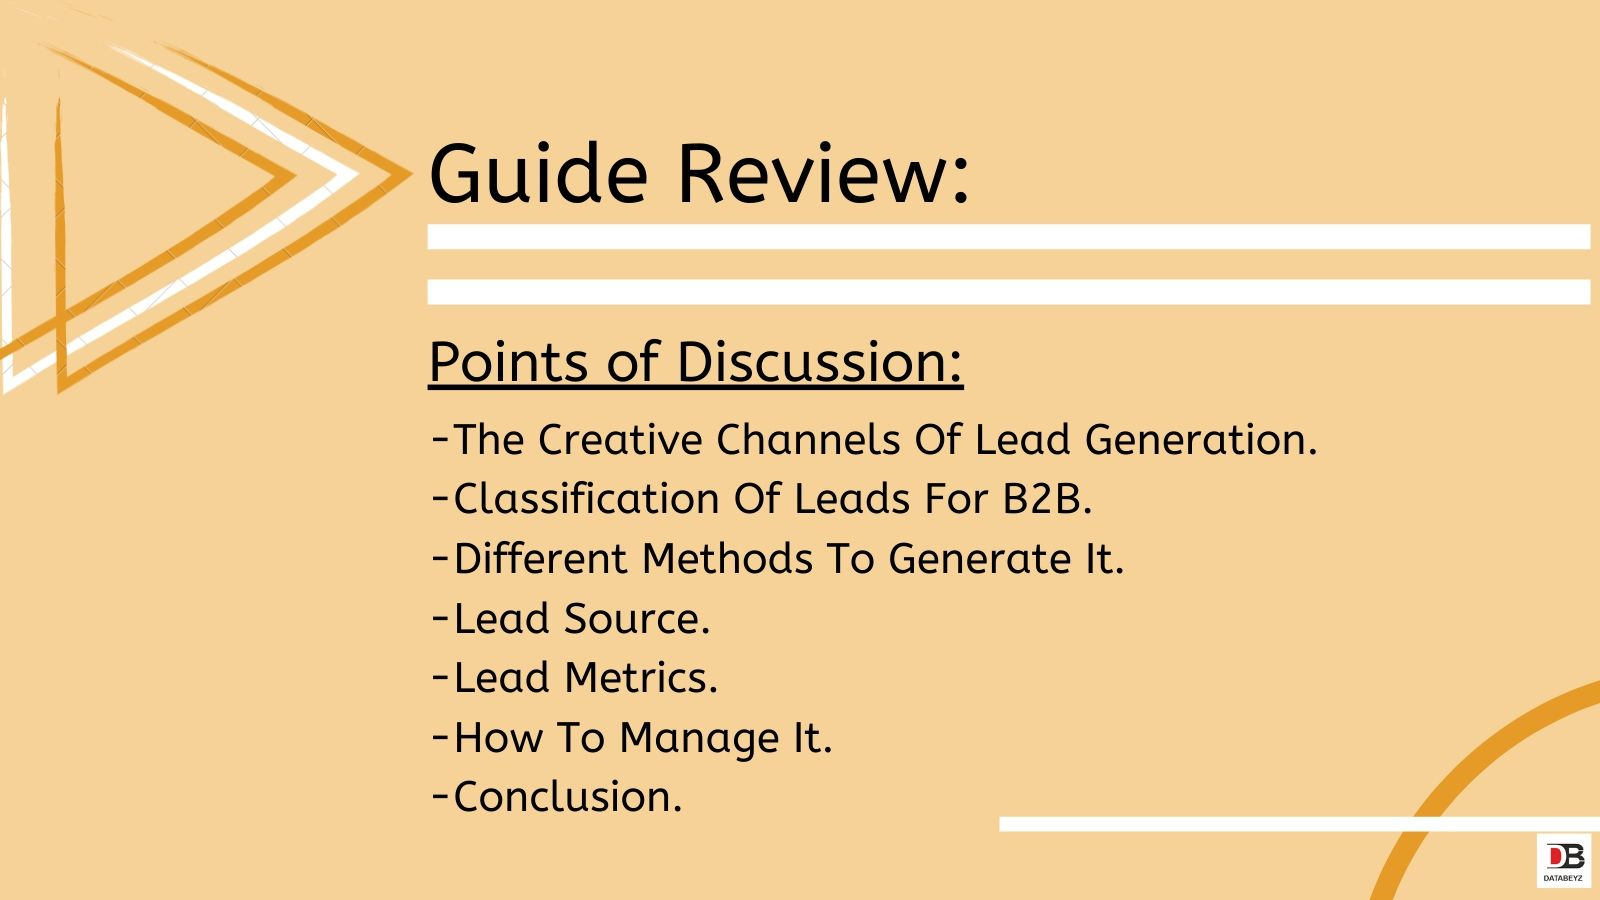 Terrific Facts To Learn All About Leads - Guide Review | Databeyz